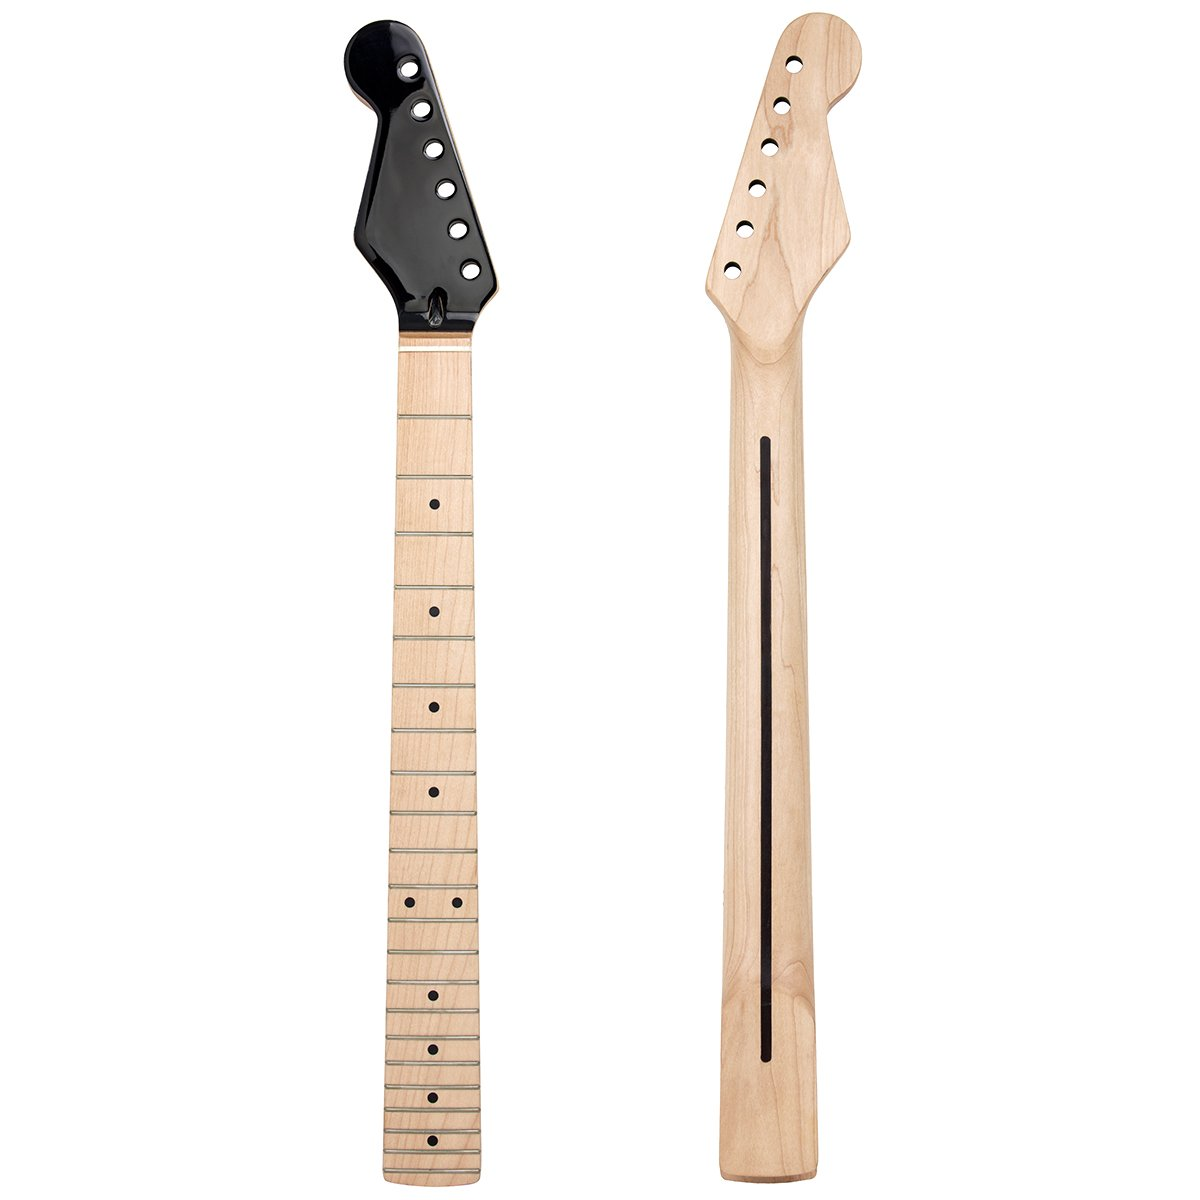 Kmise Left Hand Electric Guitar Neck for Similar Guitar Replacement Canada Maple 22 Fret Bolt On Clear Satin with Black Gloss Head